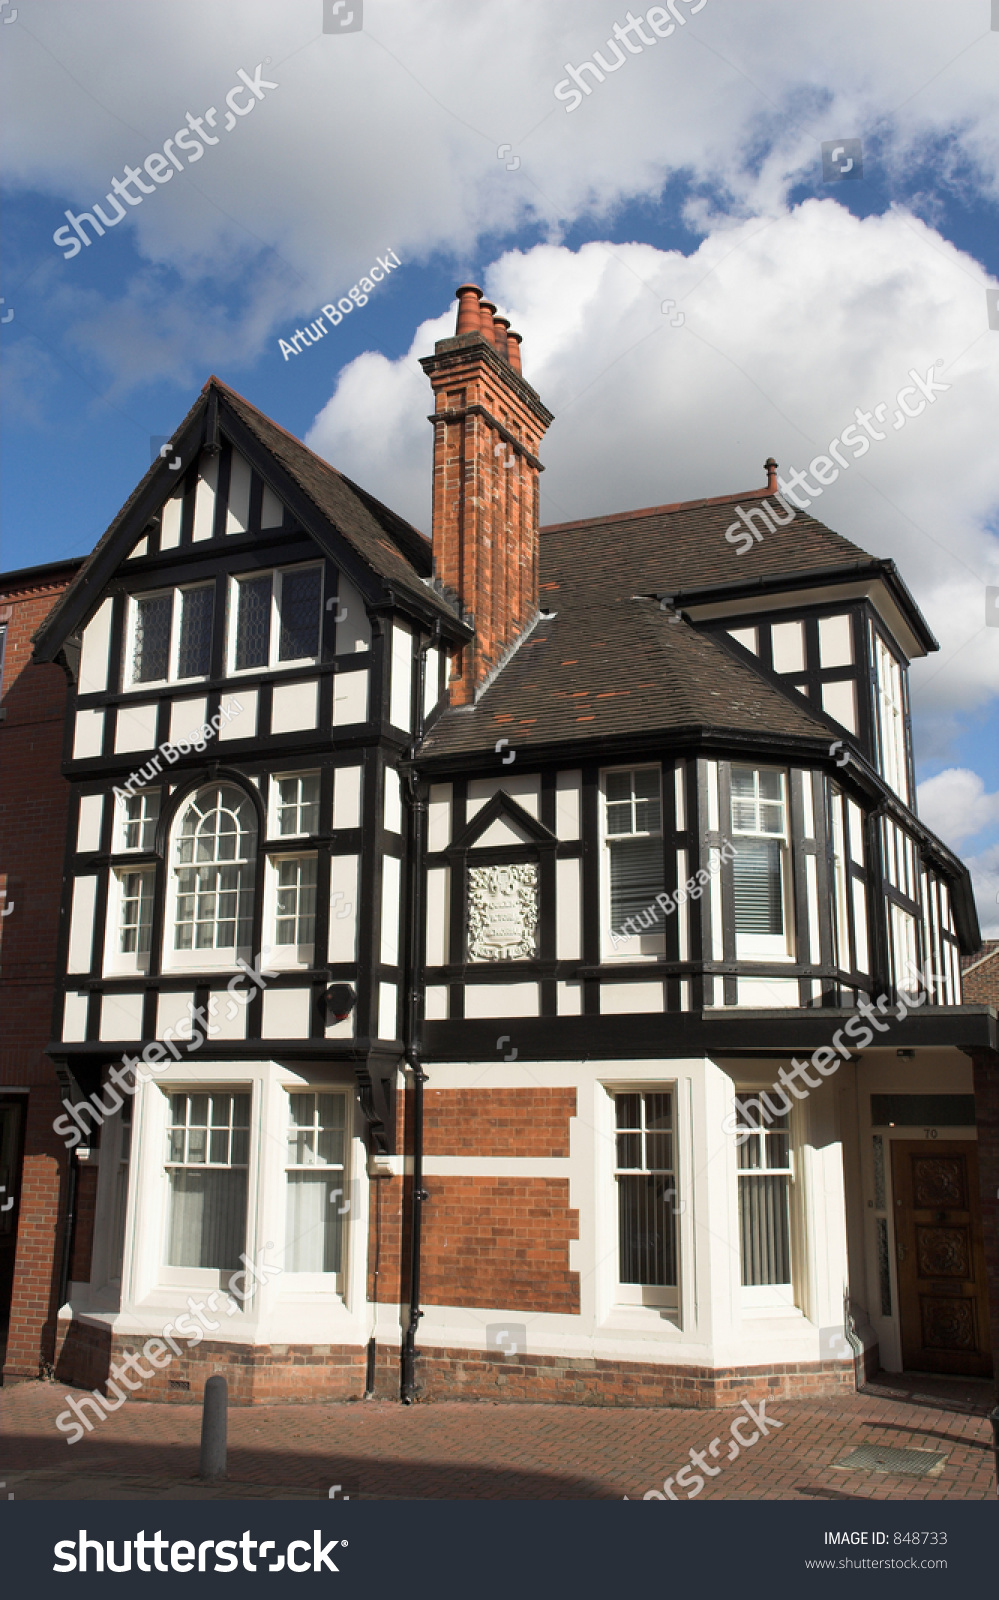 Nice Looking House Stock Photo 848733 Shutterstock